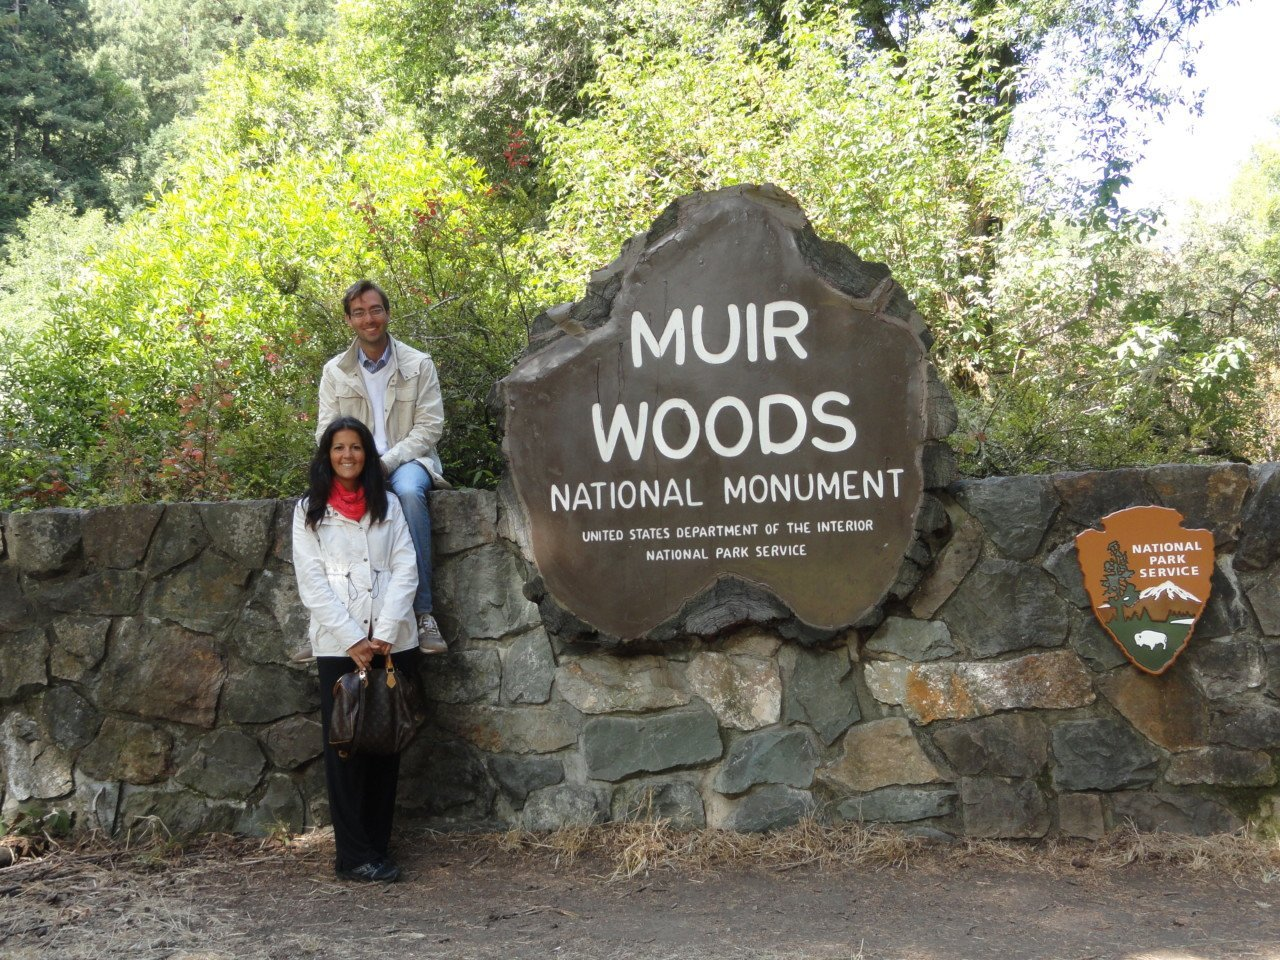 3 giorni a san francisco muir woods, california, san francisco